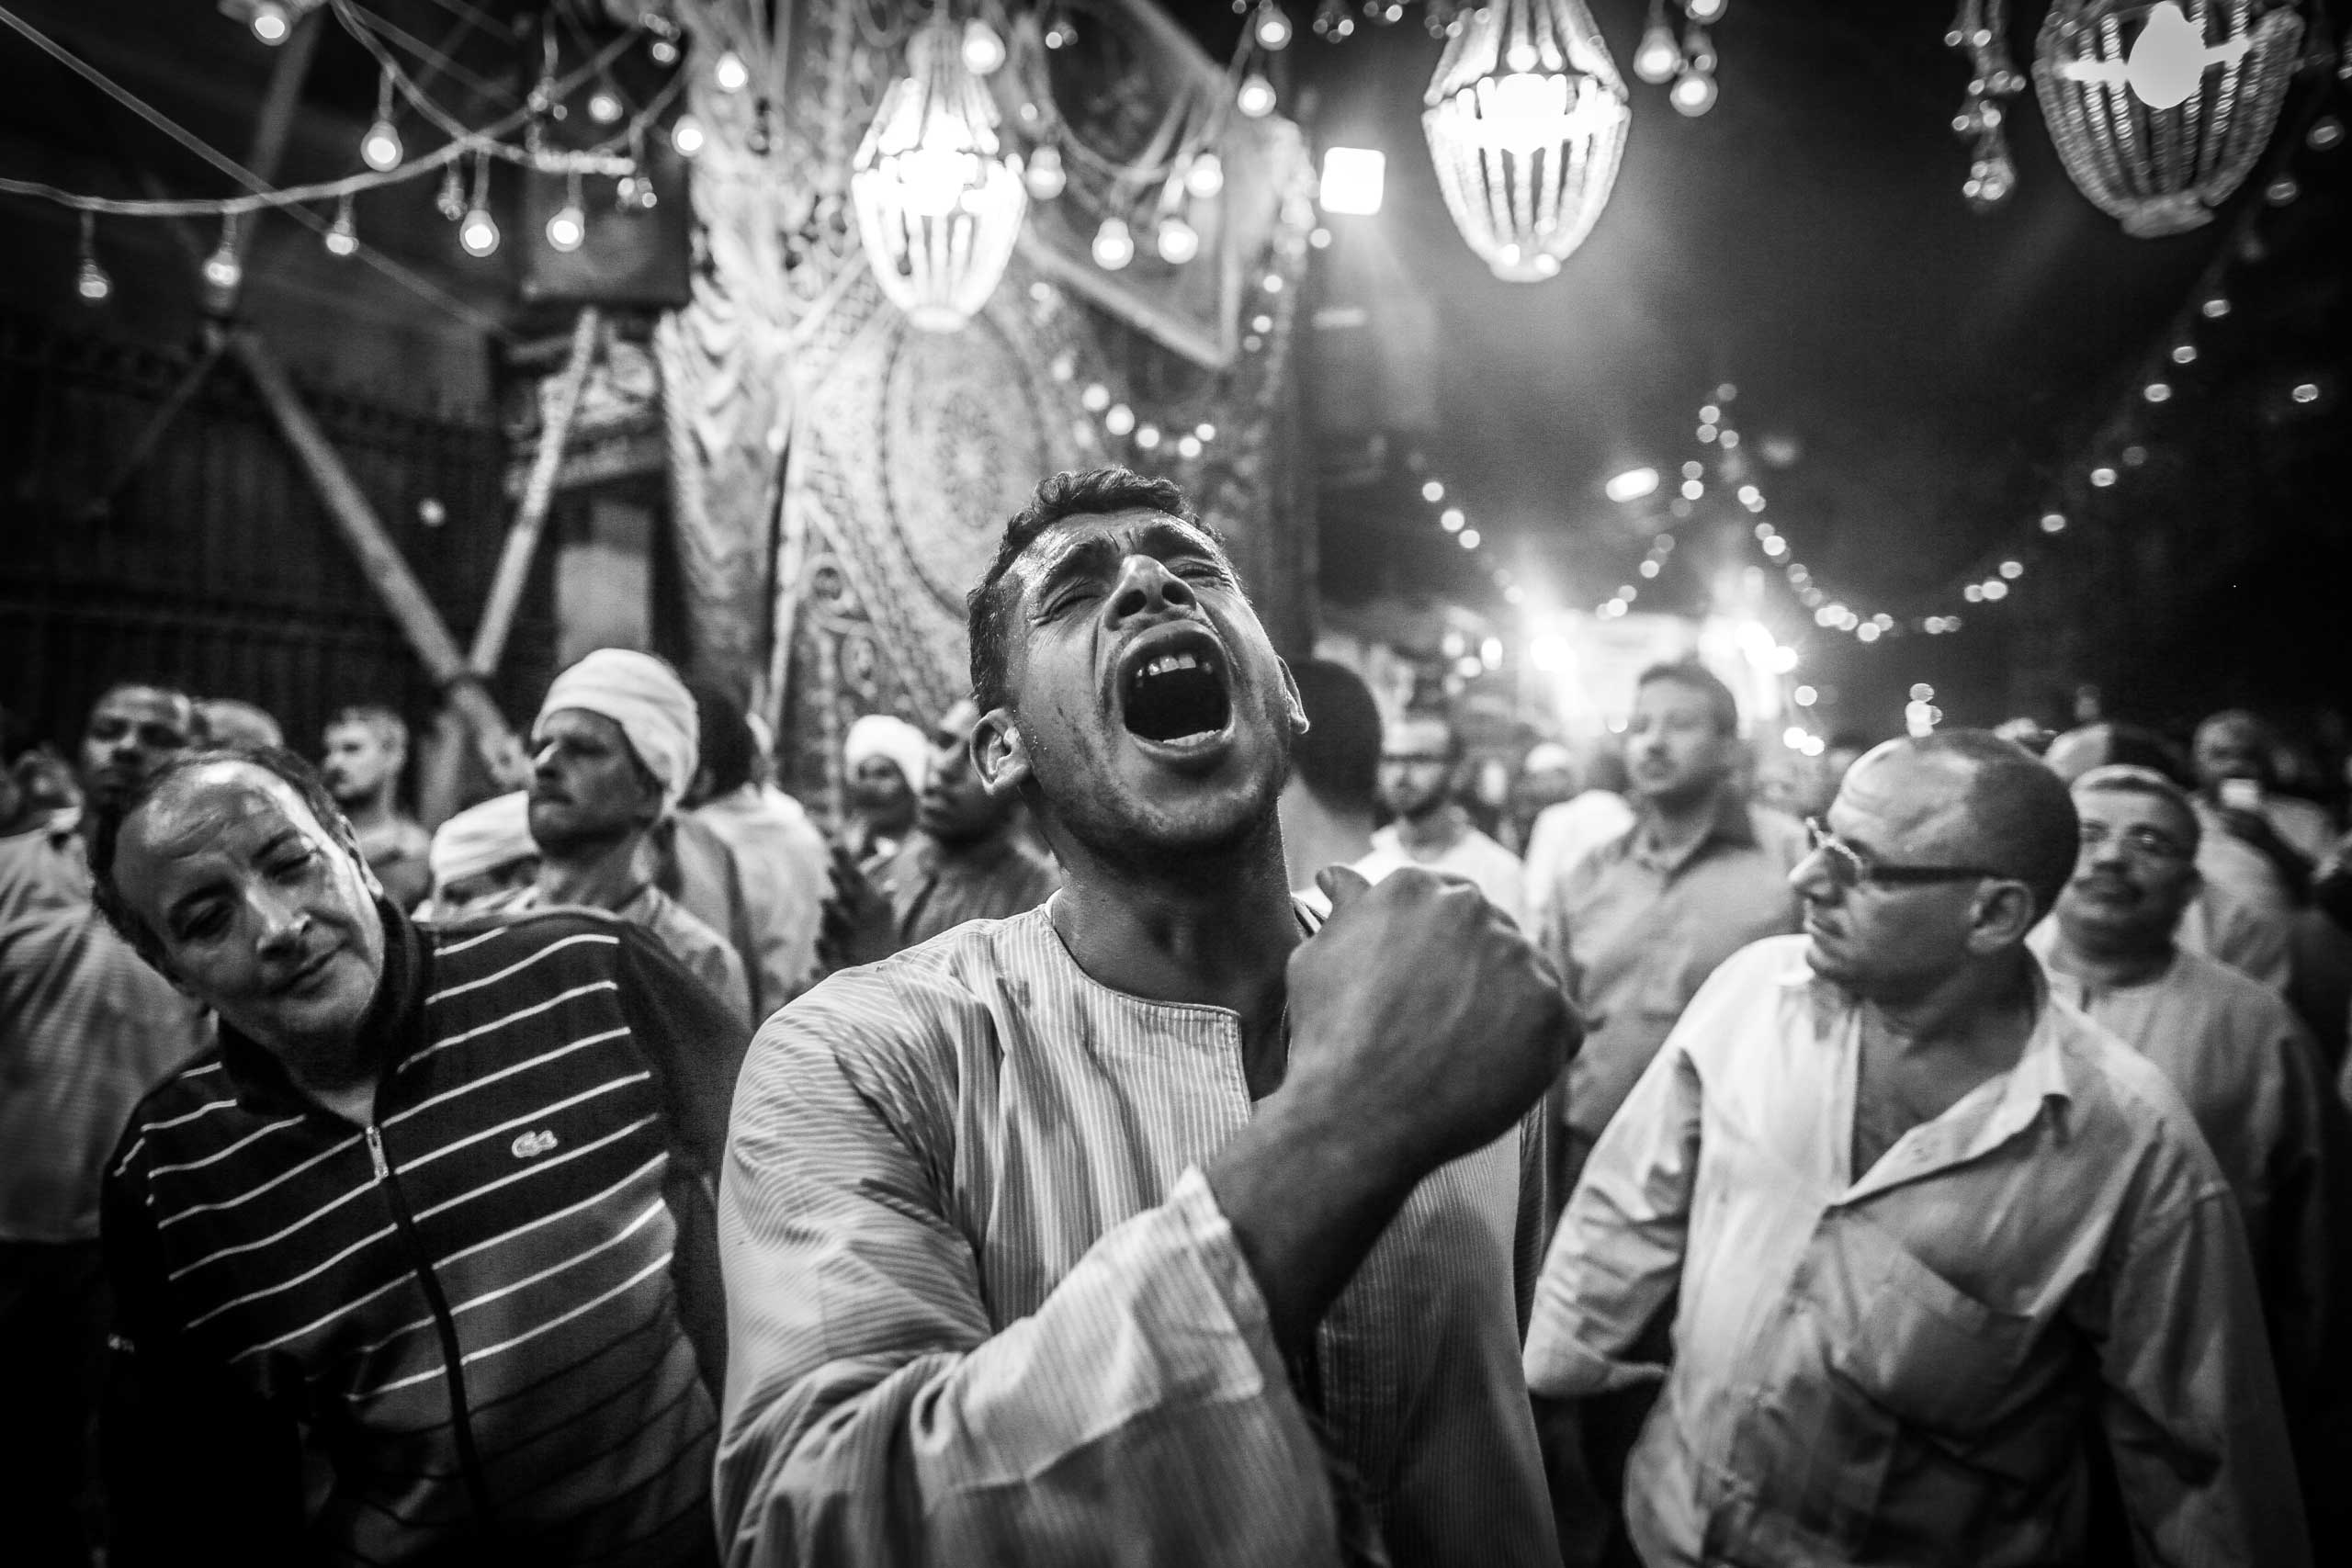 Worshippers at a celebration at the Sayeda Zeinab mosque take part in a performance called Hadra, in which they whirl for long periods. Downtown Cairo, Egypt. May 20, 2014.